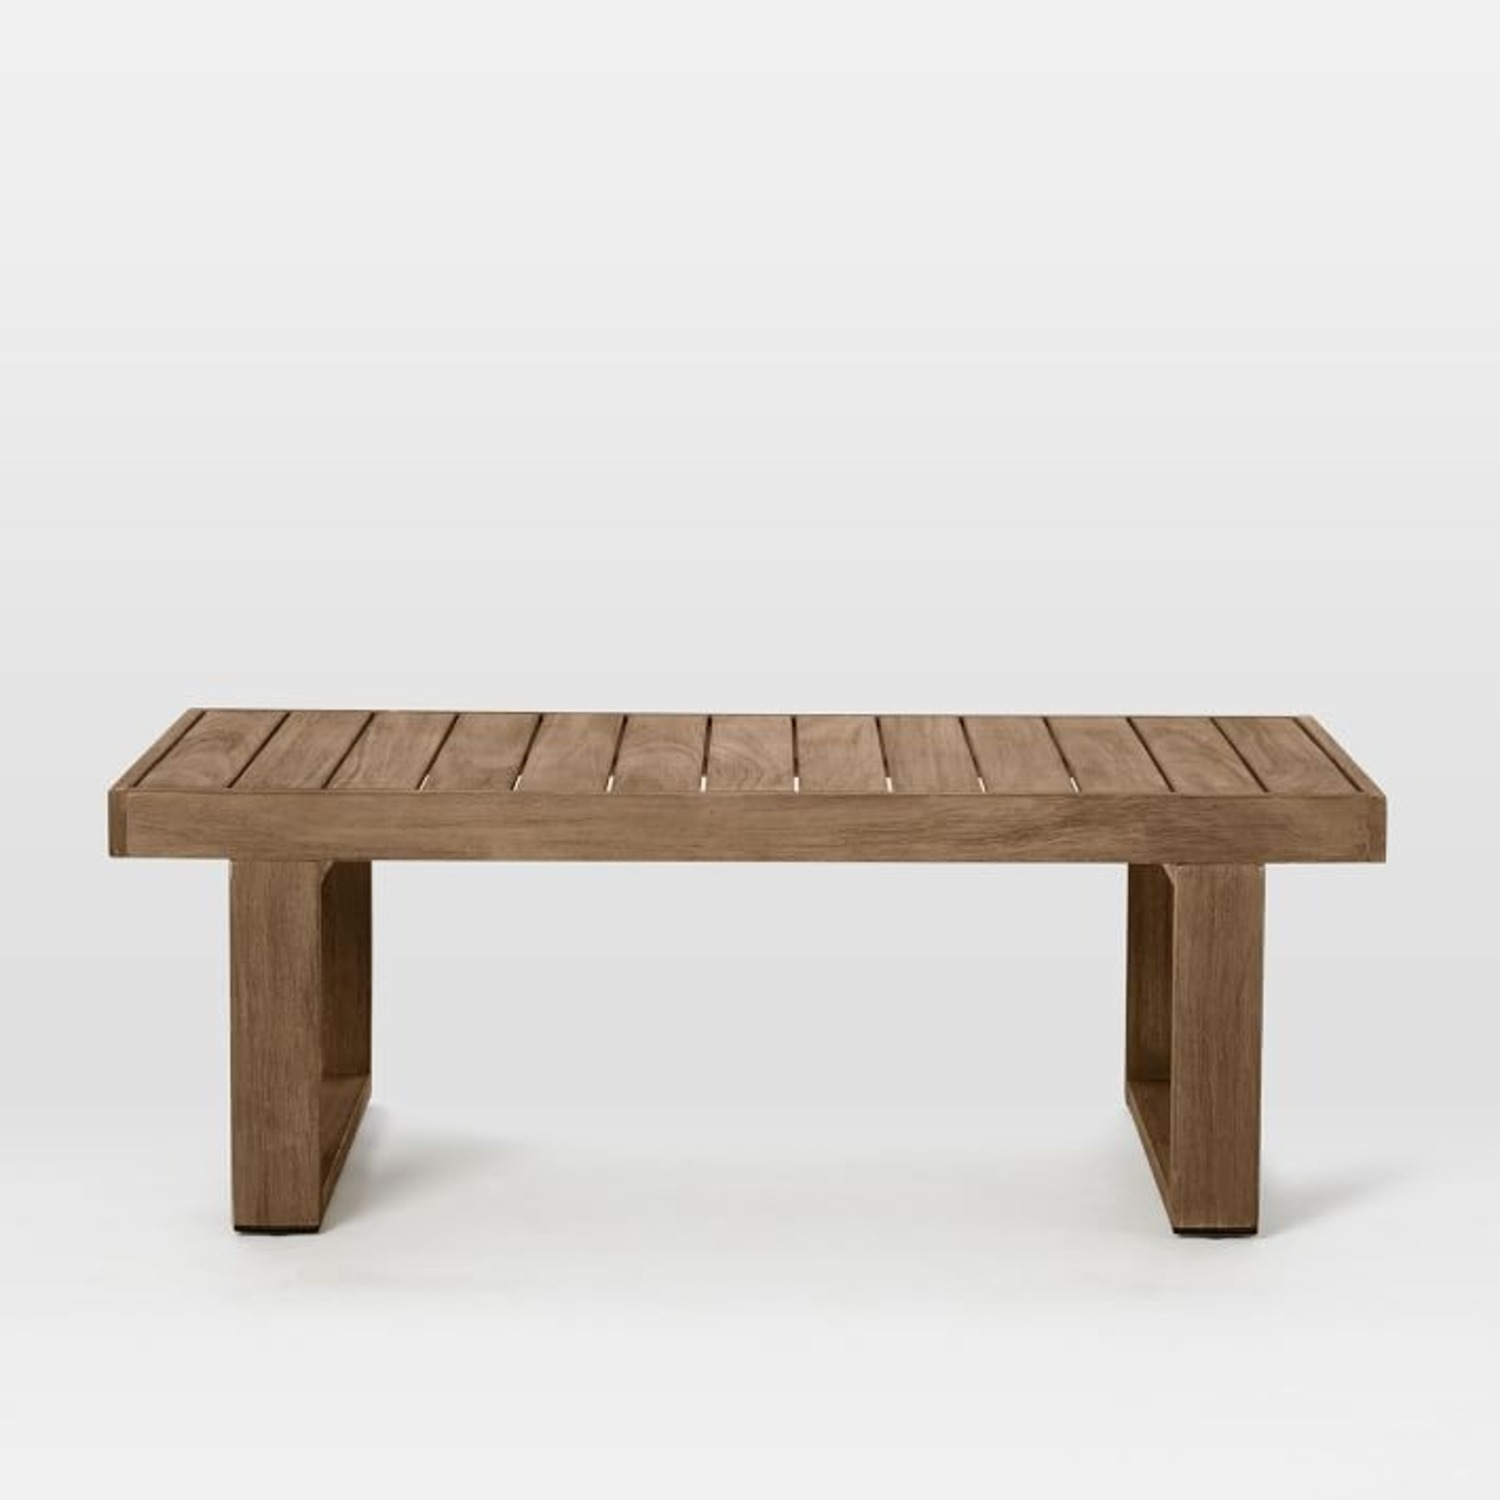 West Elm Portside Outdoor Coffee Table , Driftwood - image-2